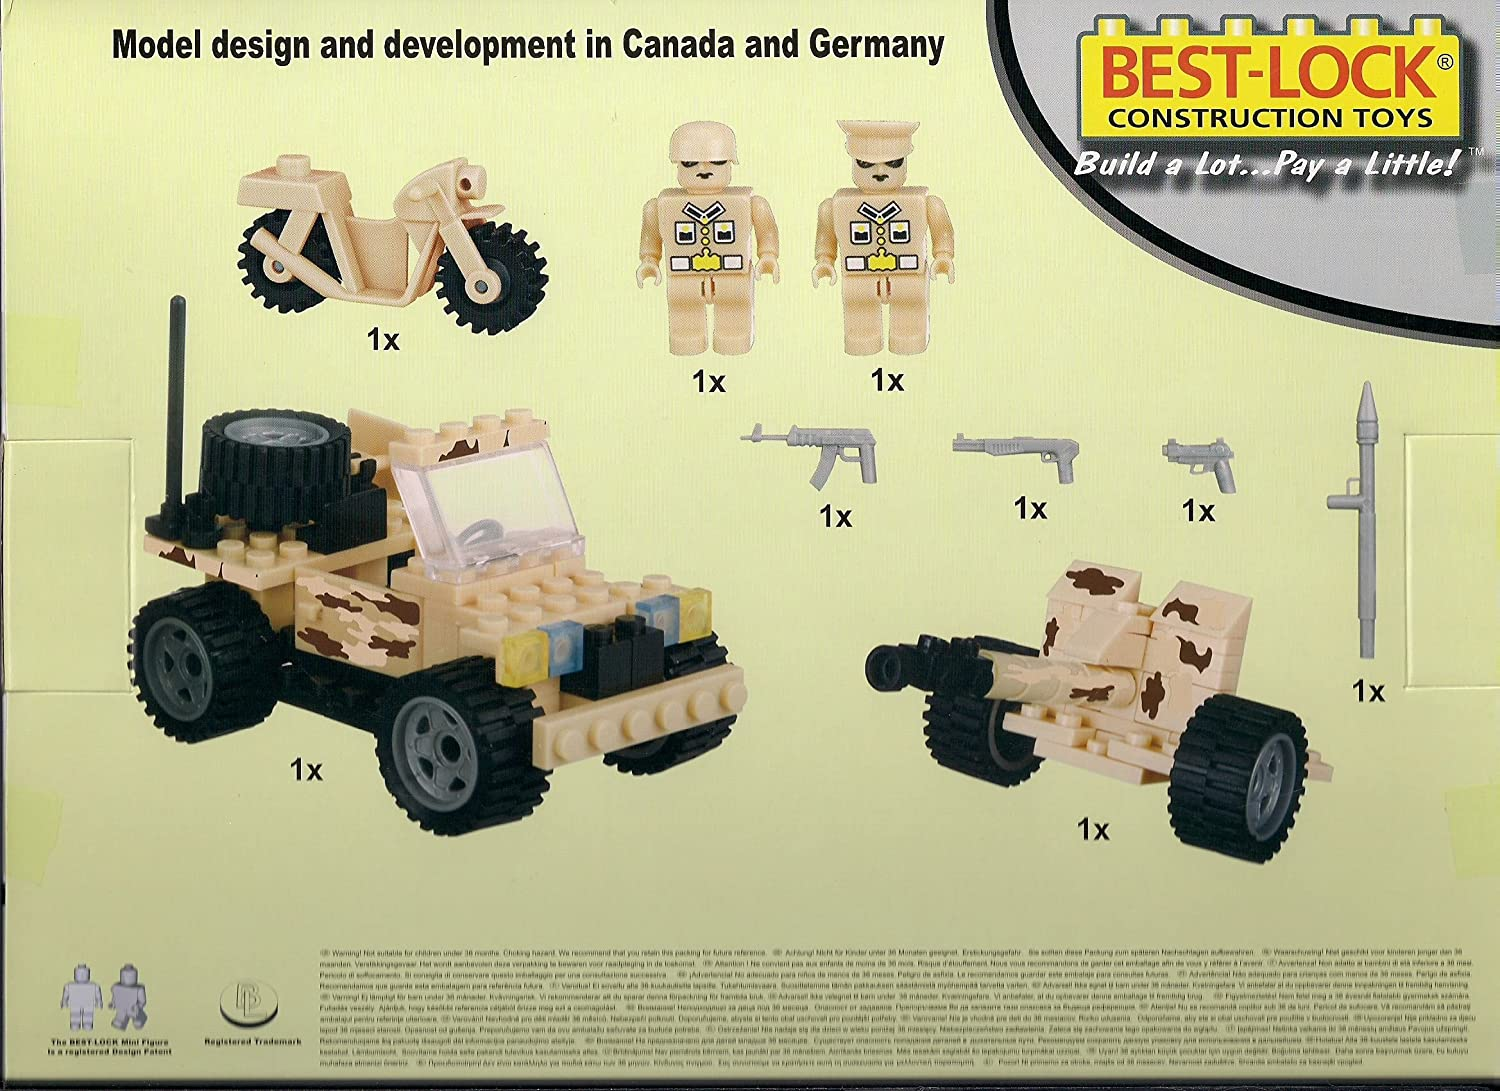 Best-Lock Construction Toys Military Set Best Lock Construction Toys 1223